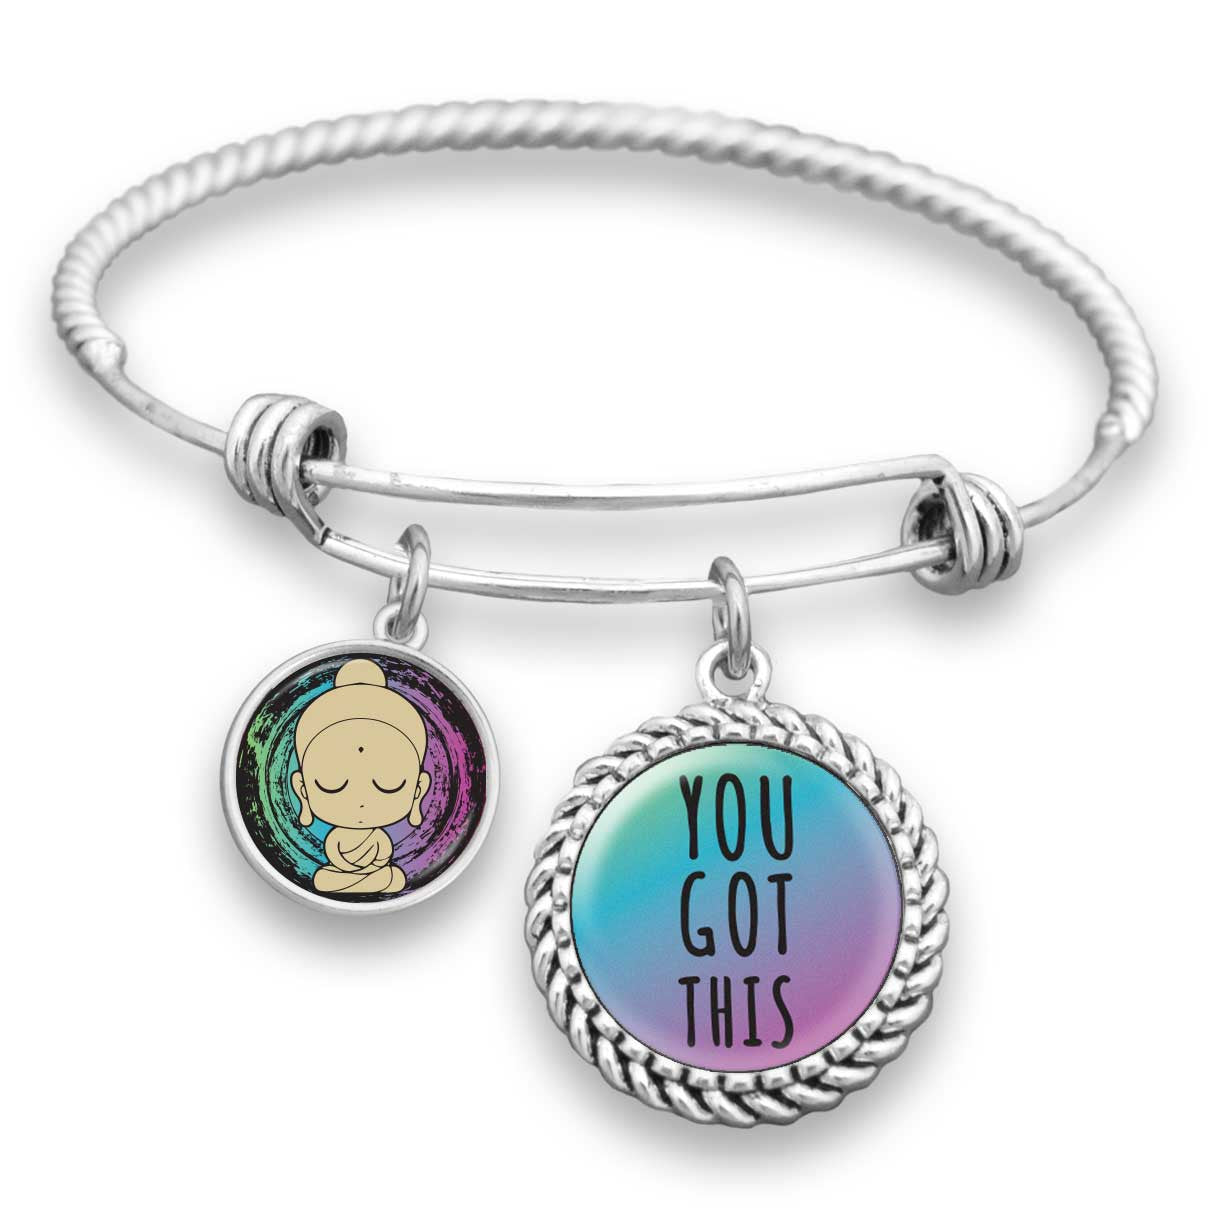 You Got This Charm Bracelet